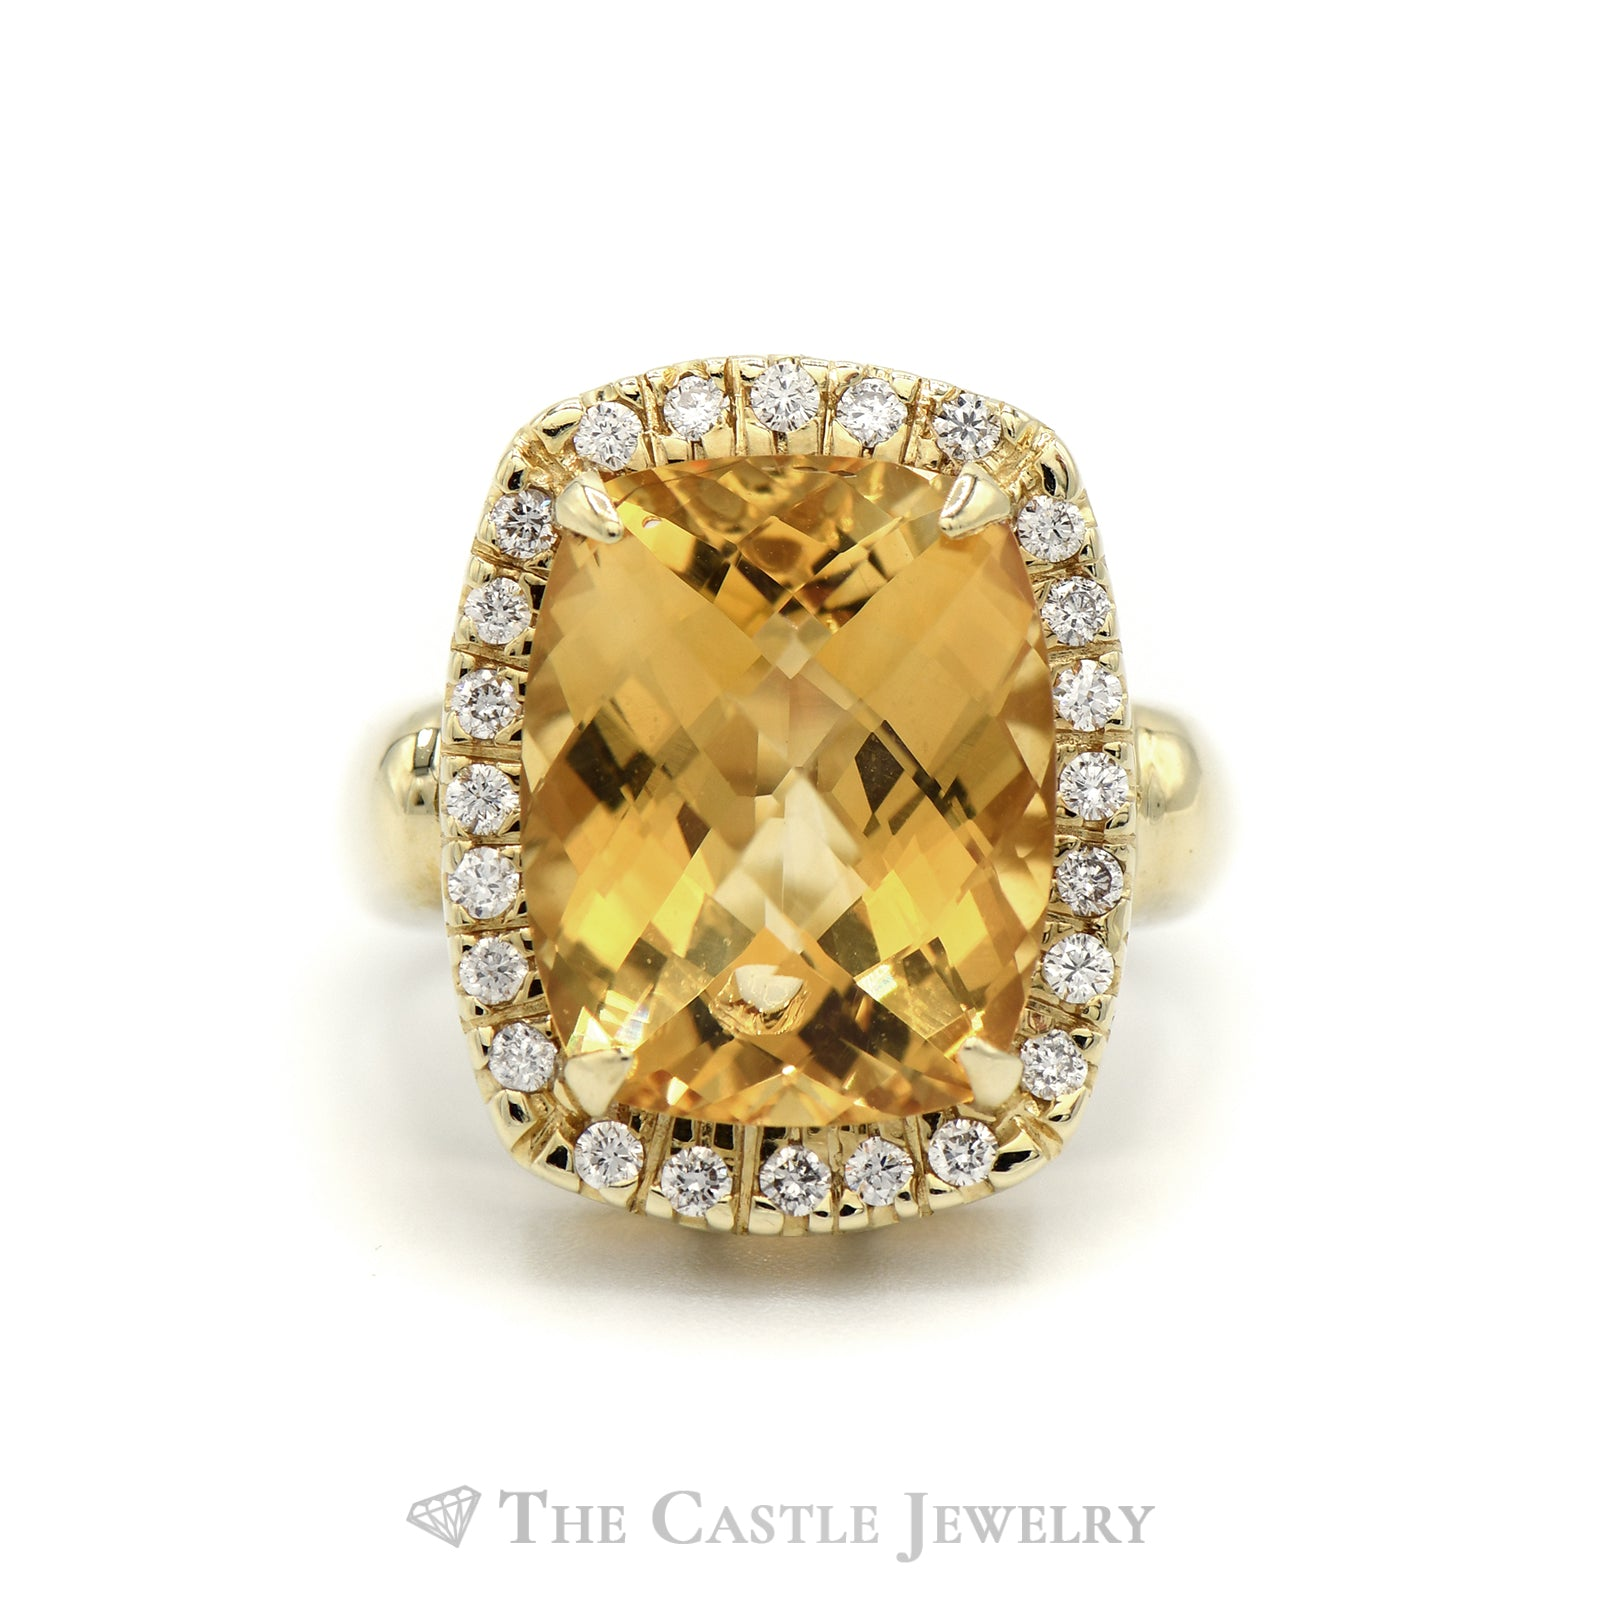 Fancy Citrine Ring with Diamond Bezel in 14K Yellow Gold